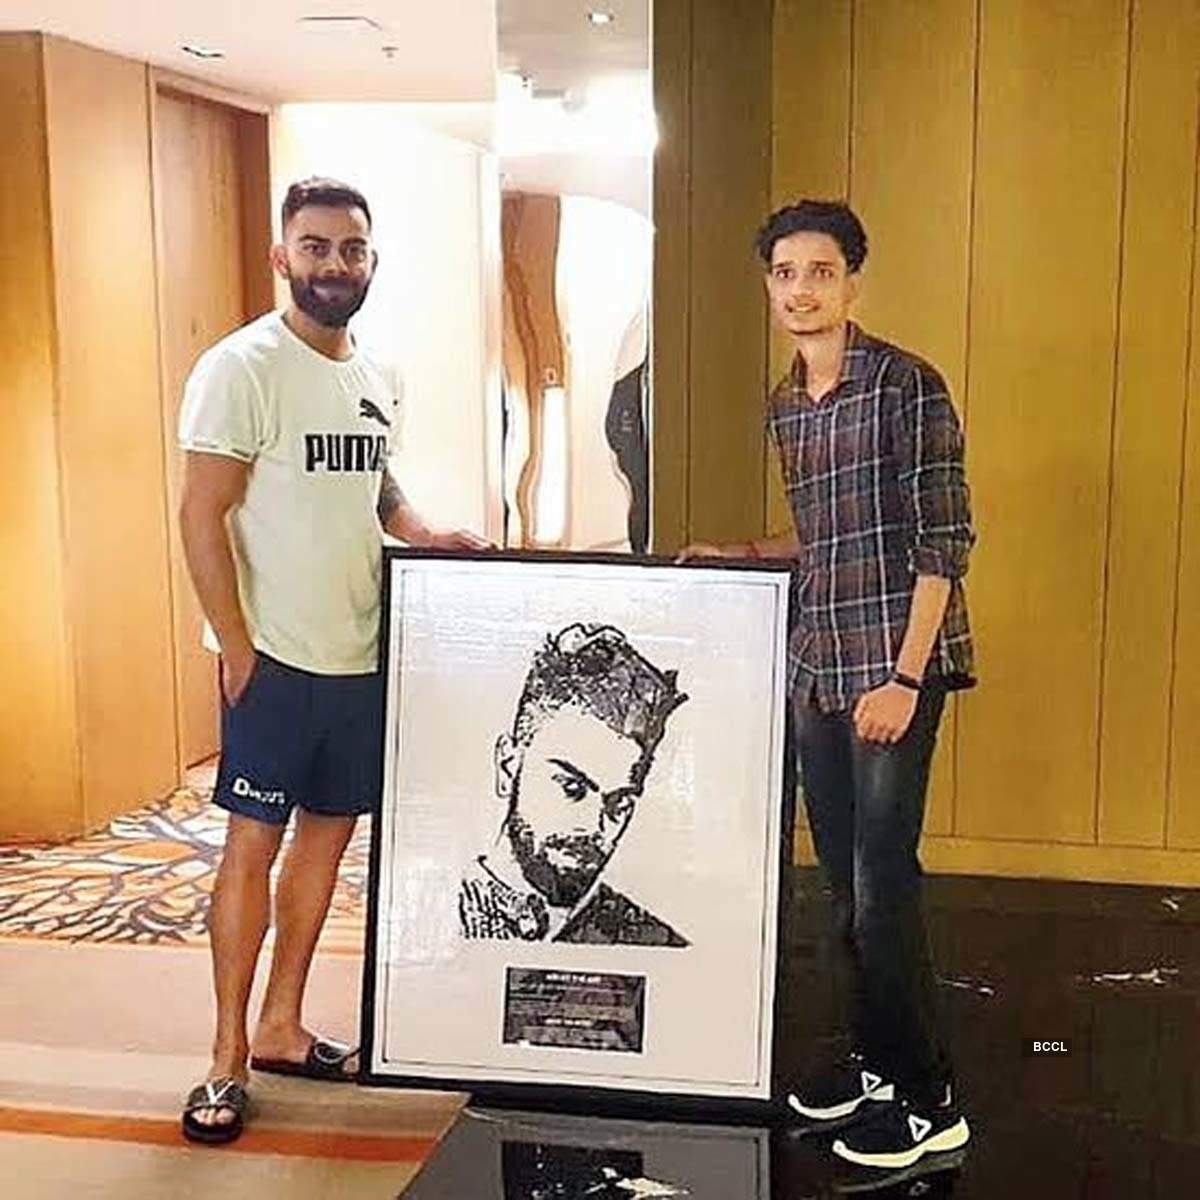 Virat Kohli's fan makes a mesmerising portrait of the cricketer with old mobile phones